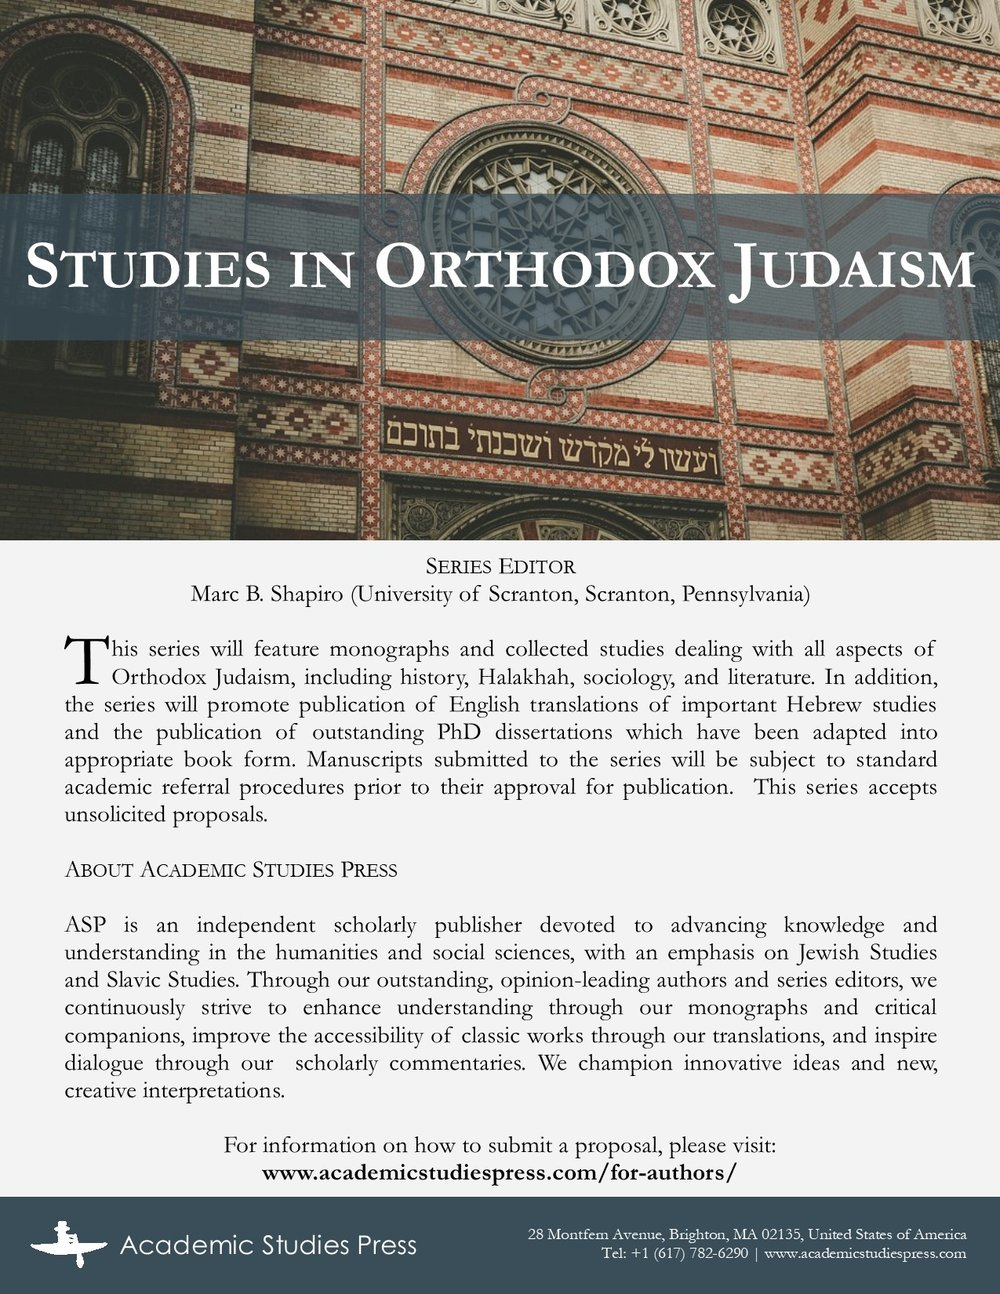 Studies in Orthodox Judaism Flyer.jpg